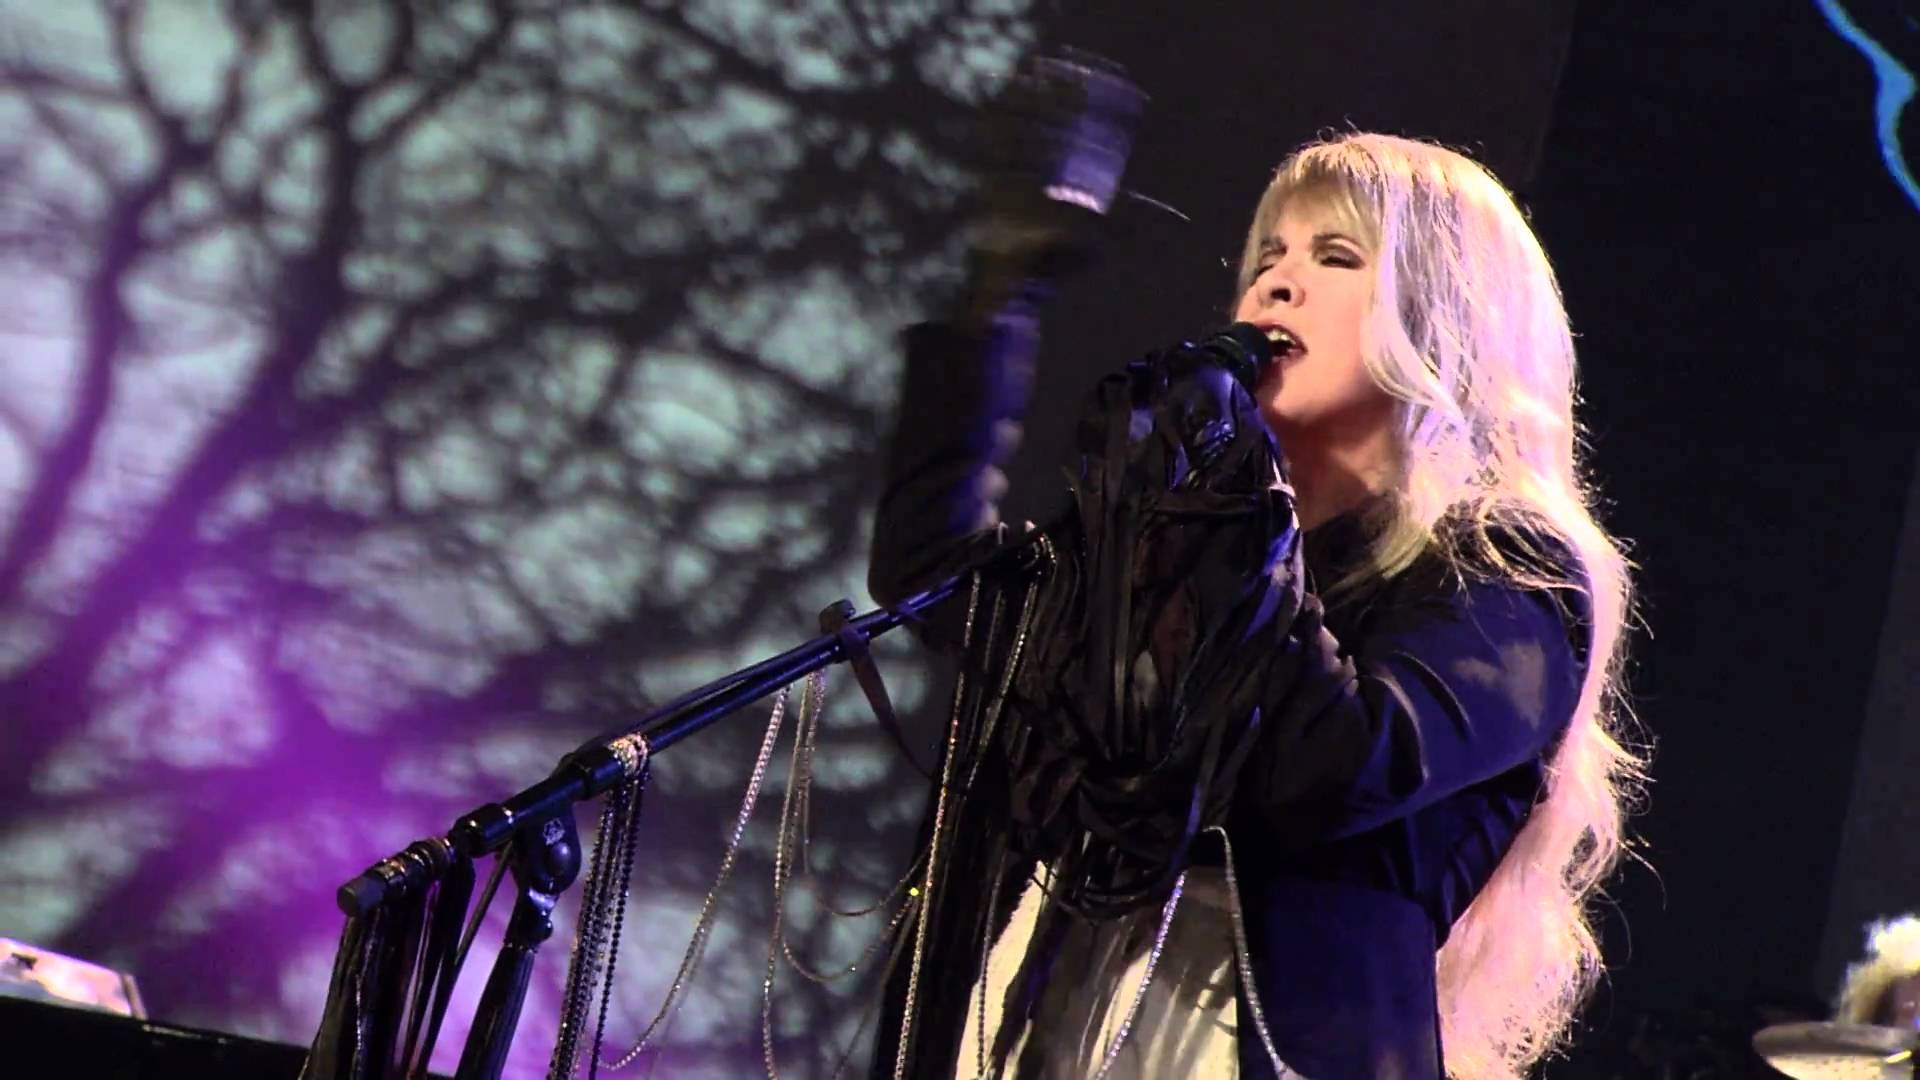 Stevie Nicks says she will never retire, plans to stay young